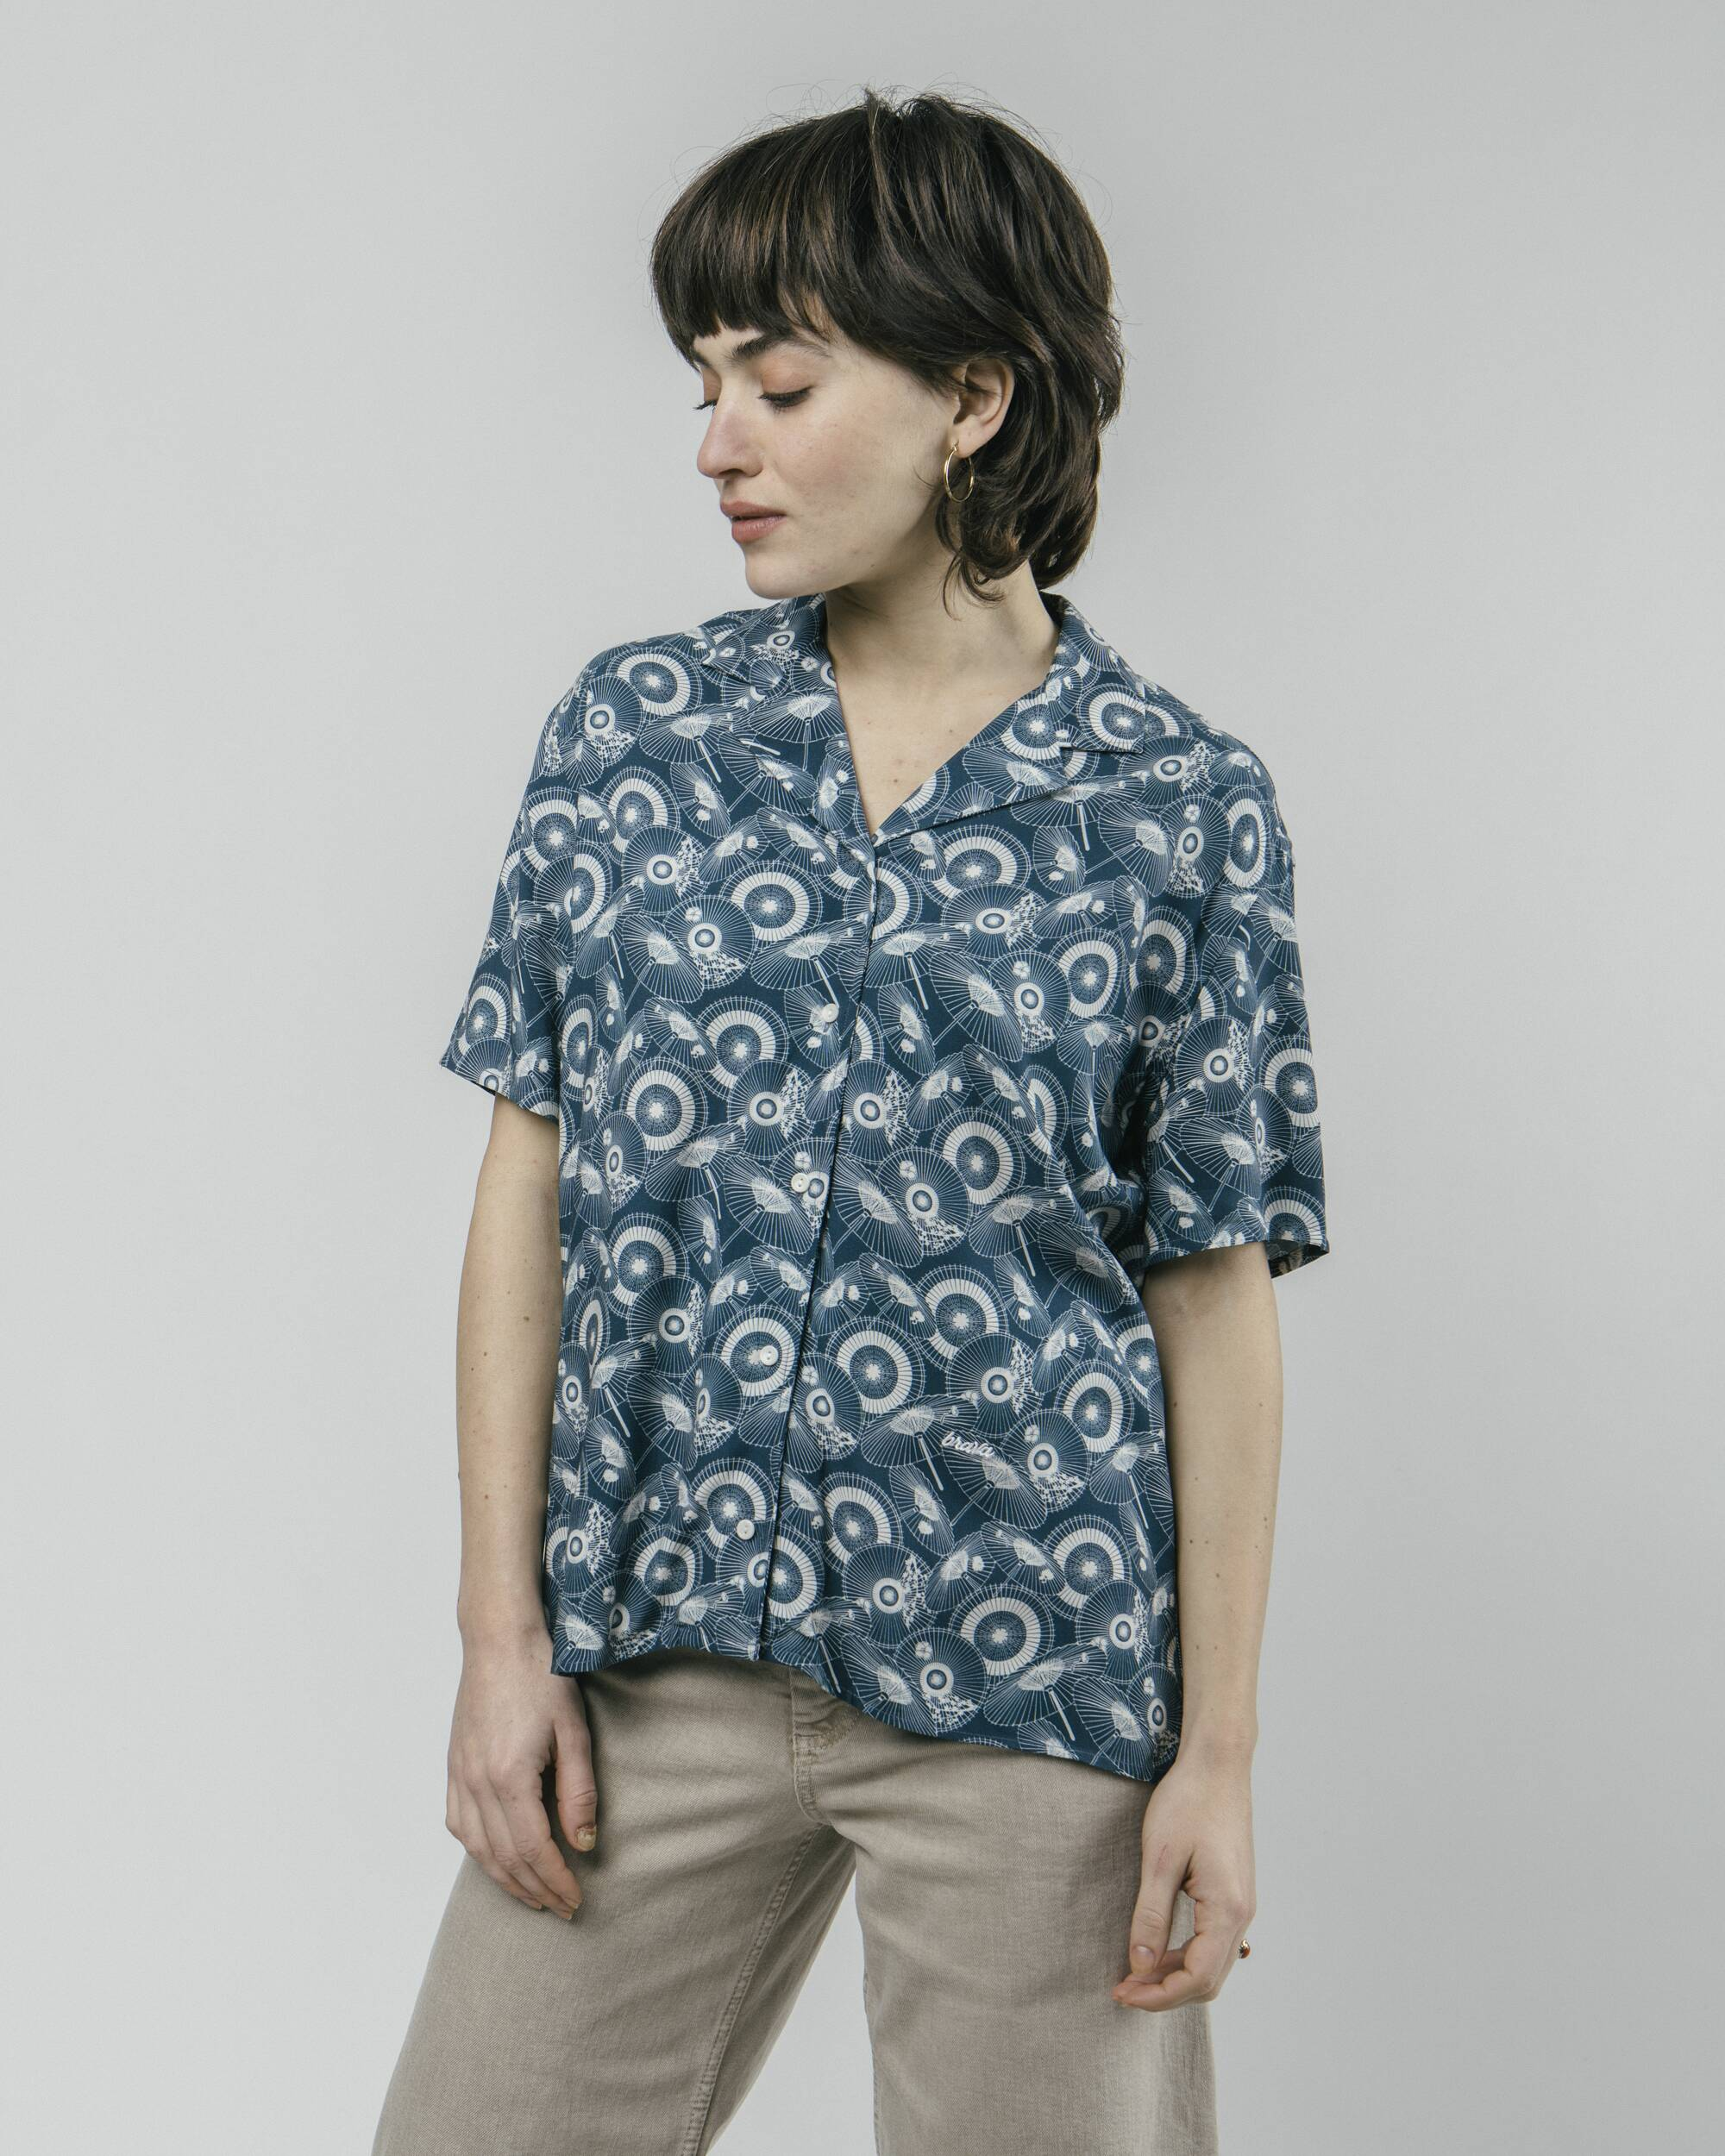 The Osaka Parasol Aloha Blouse